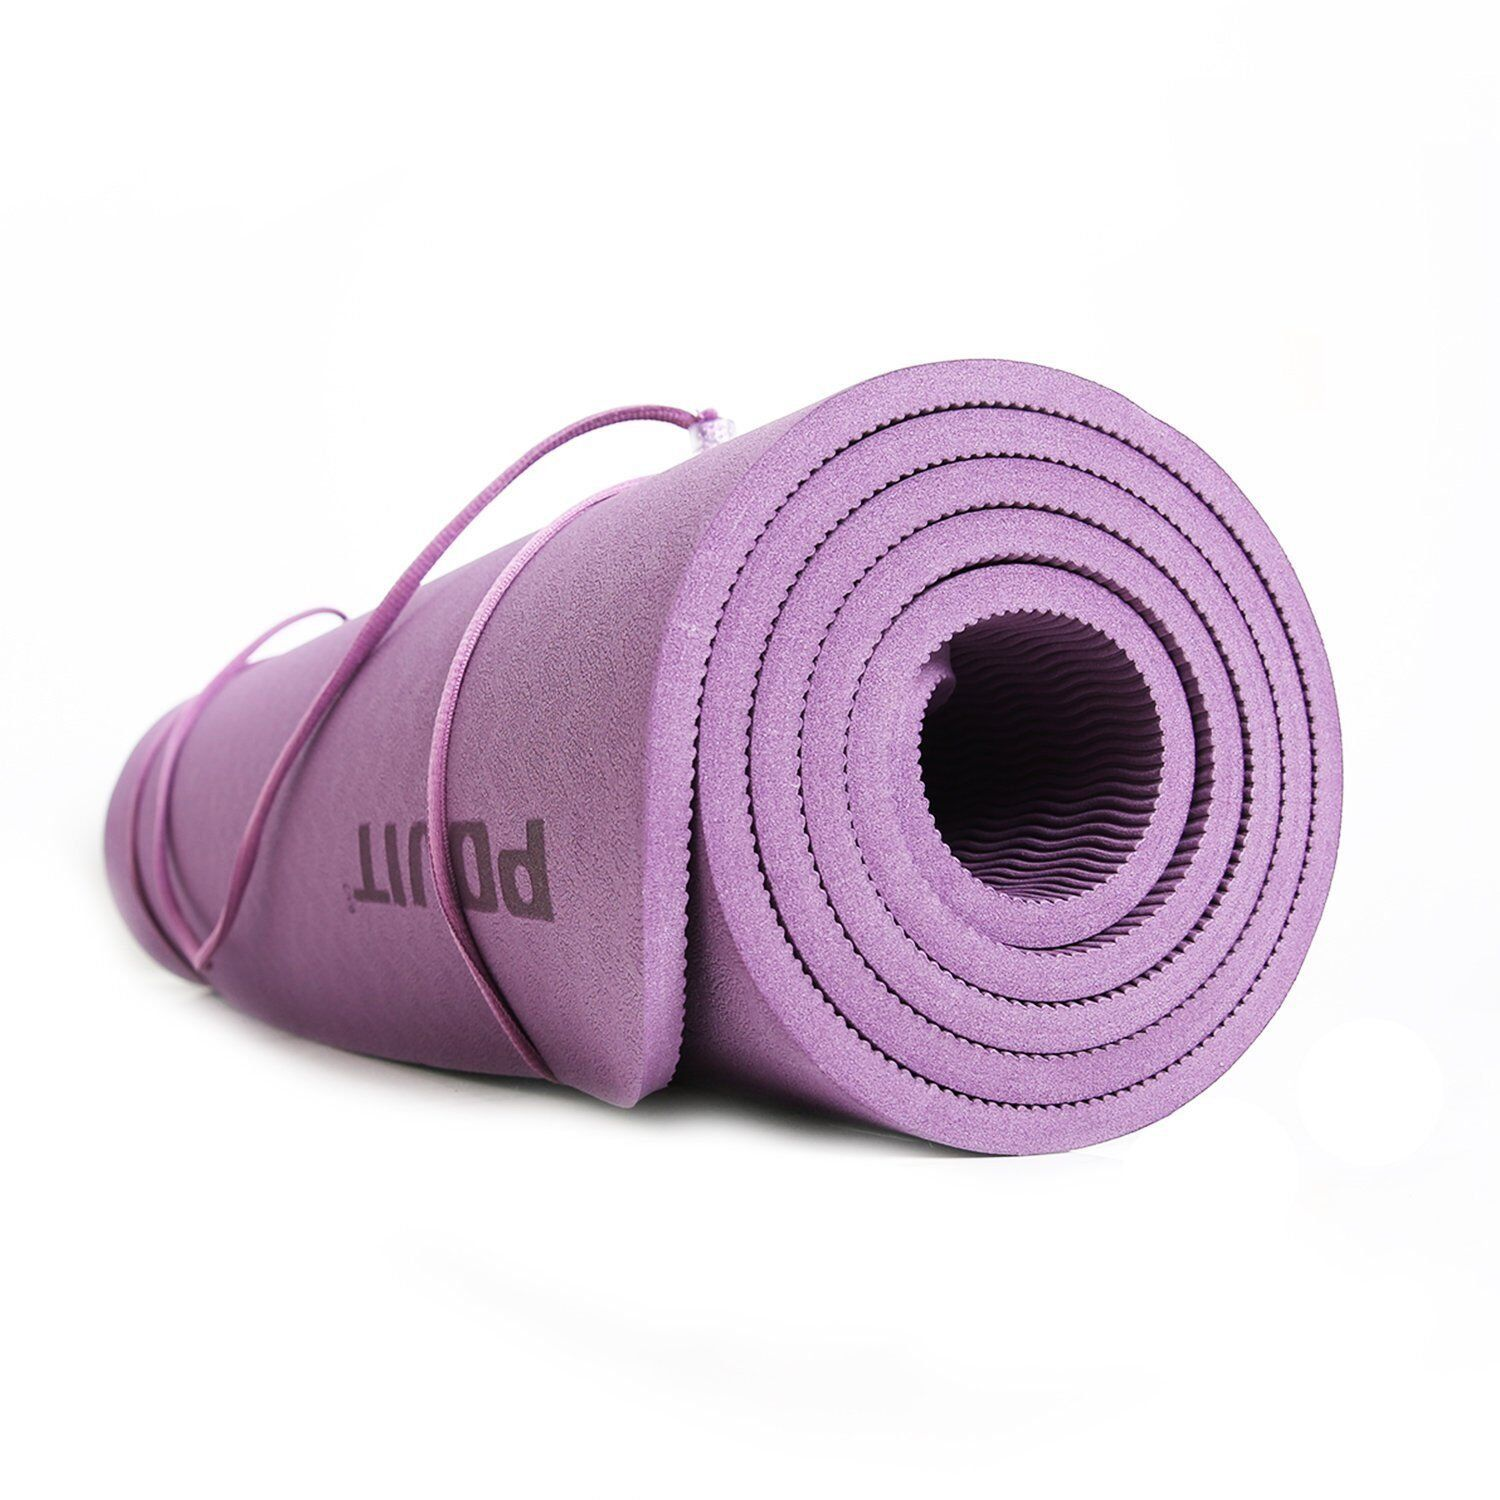 Aiker Yoga Mat Premium Quality Non Slip Exercise Mat 8mm Thick 72 X 24 Inches Perfect For Yoga Pilates Situps Stretch Mat Exercises Floor Workouts Yoga Mat